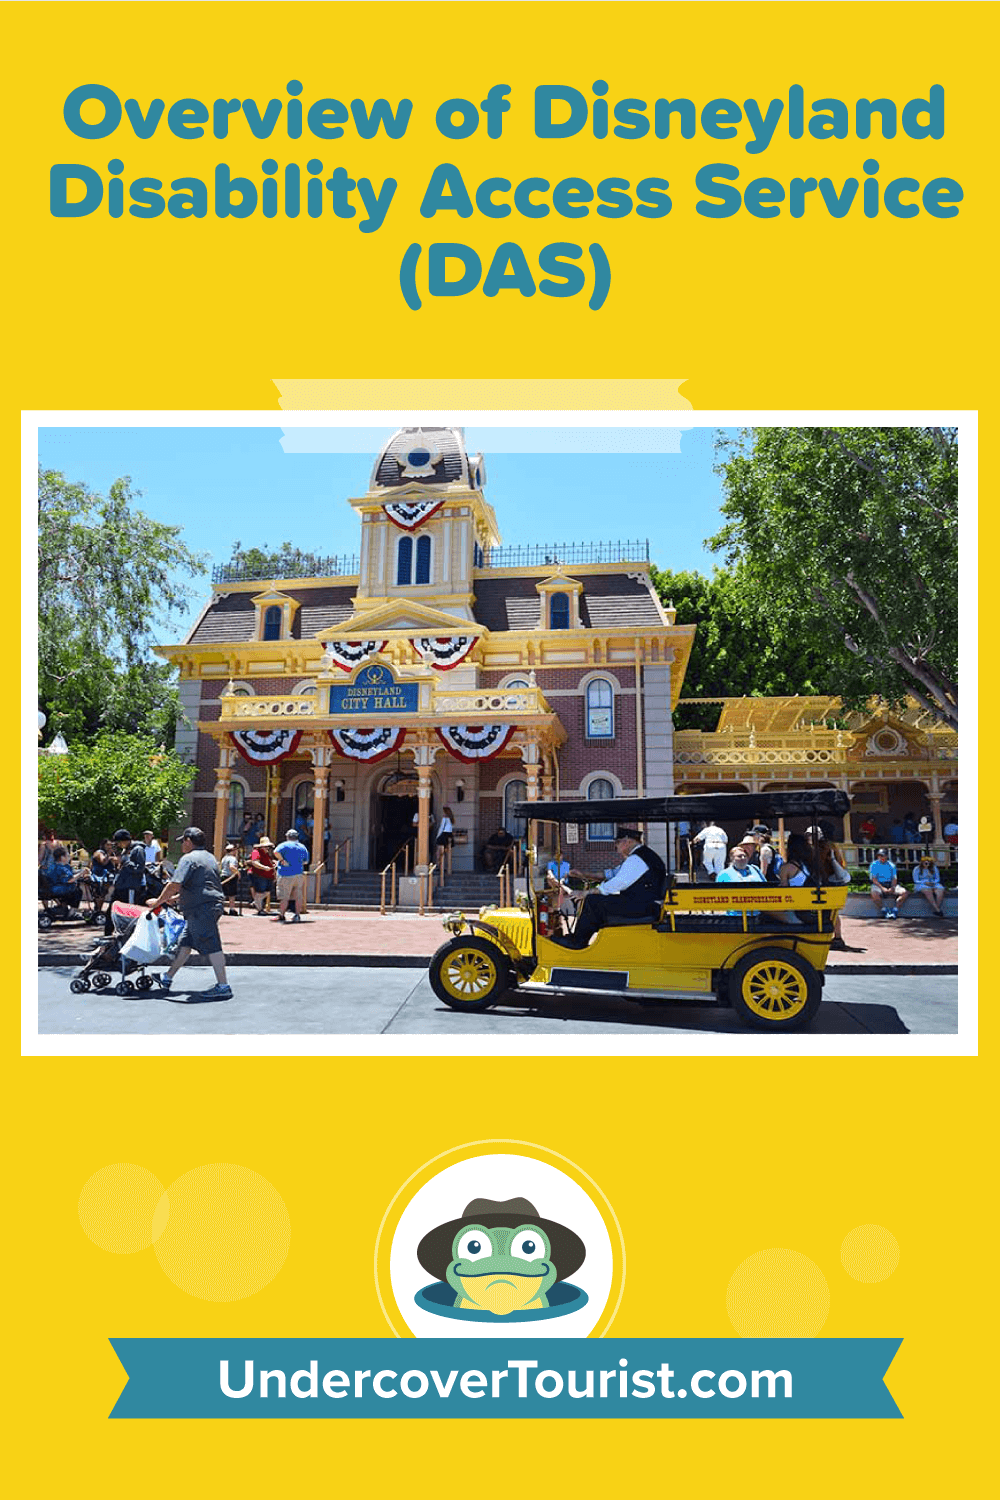 Overview of Disneyland Disability Access Service (DAS)